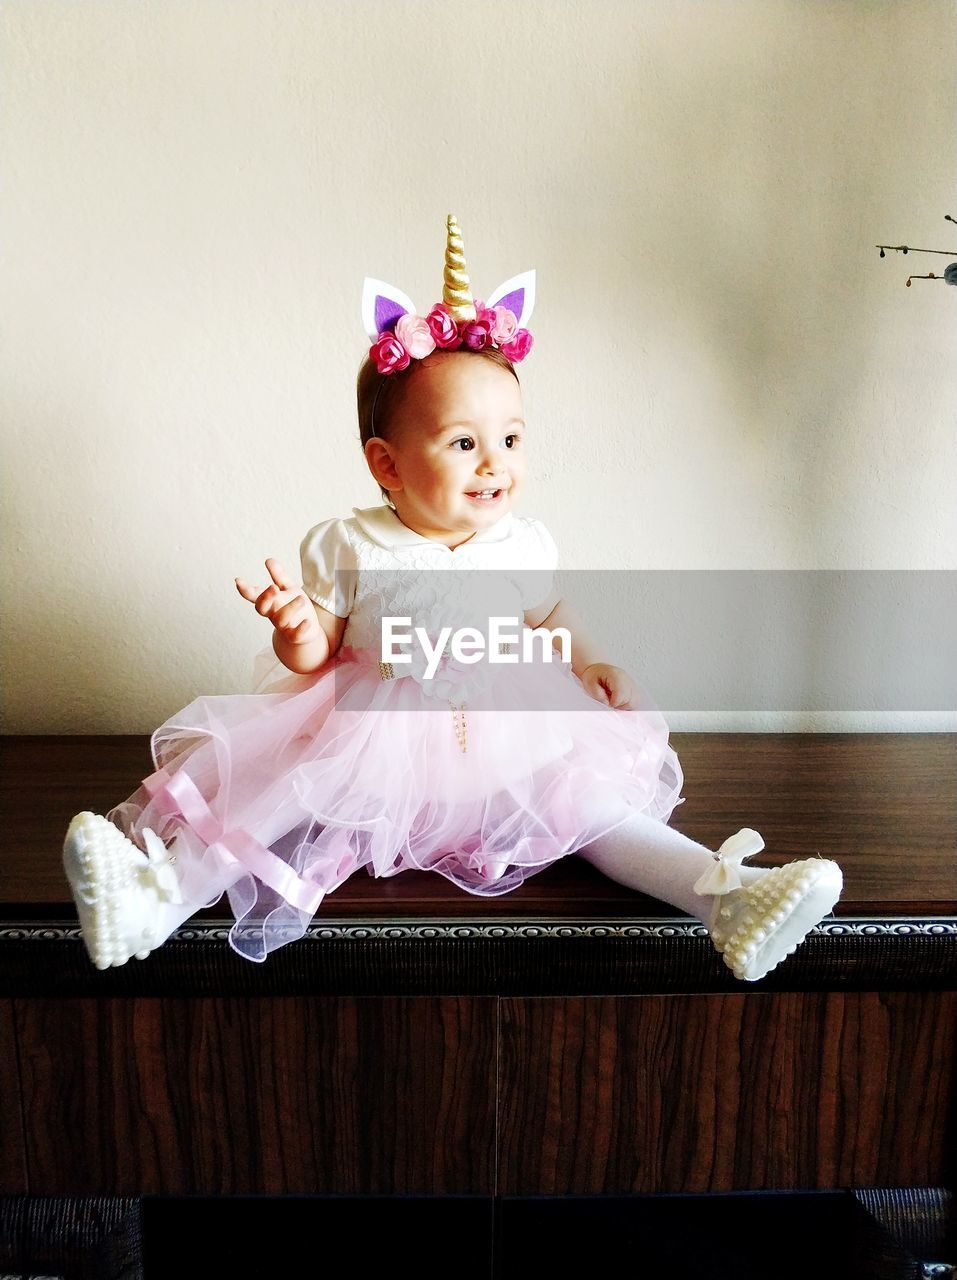 Full Length Of Cute Smiling Baby Girl Sitting On Cabinet At Home